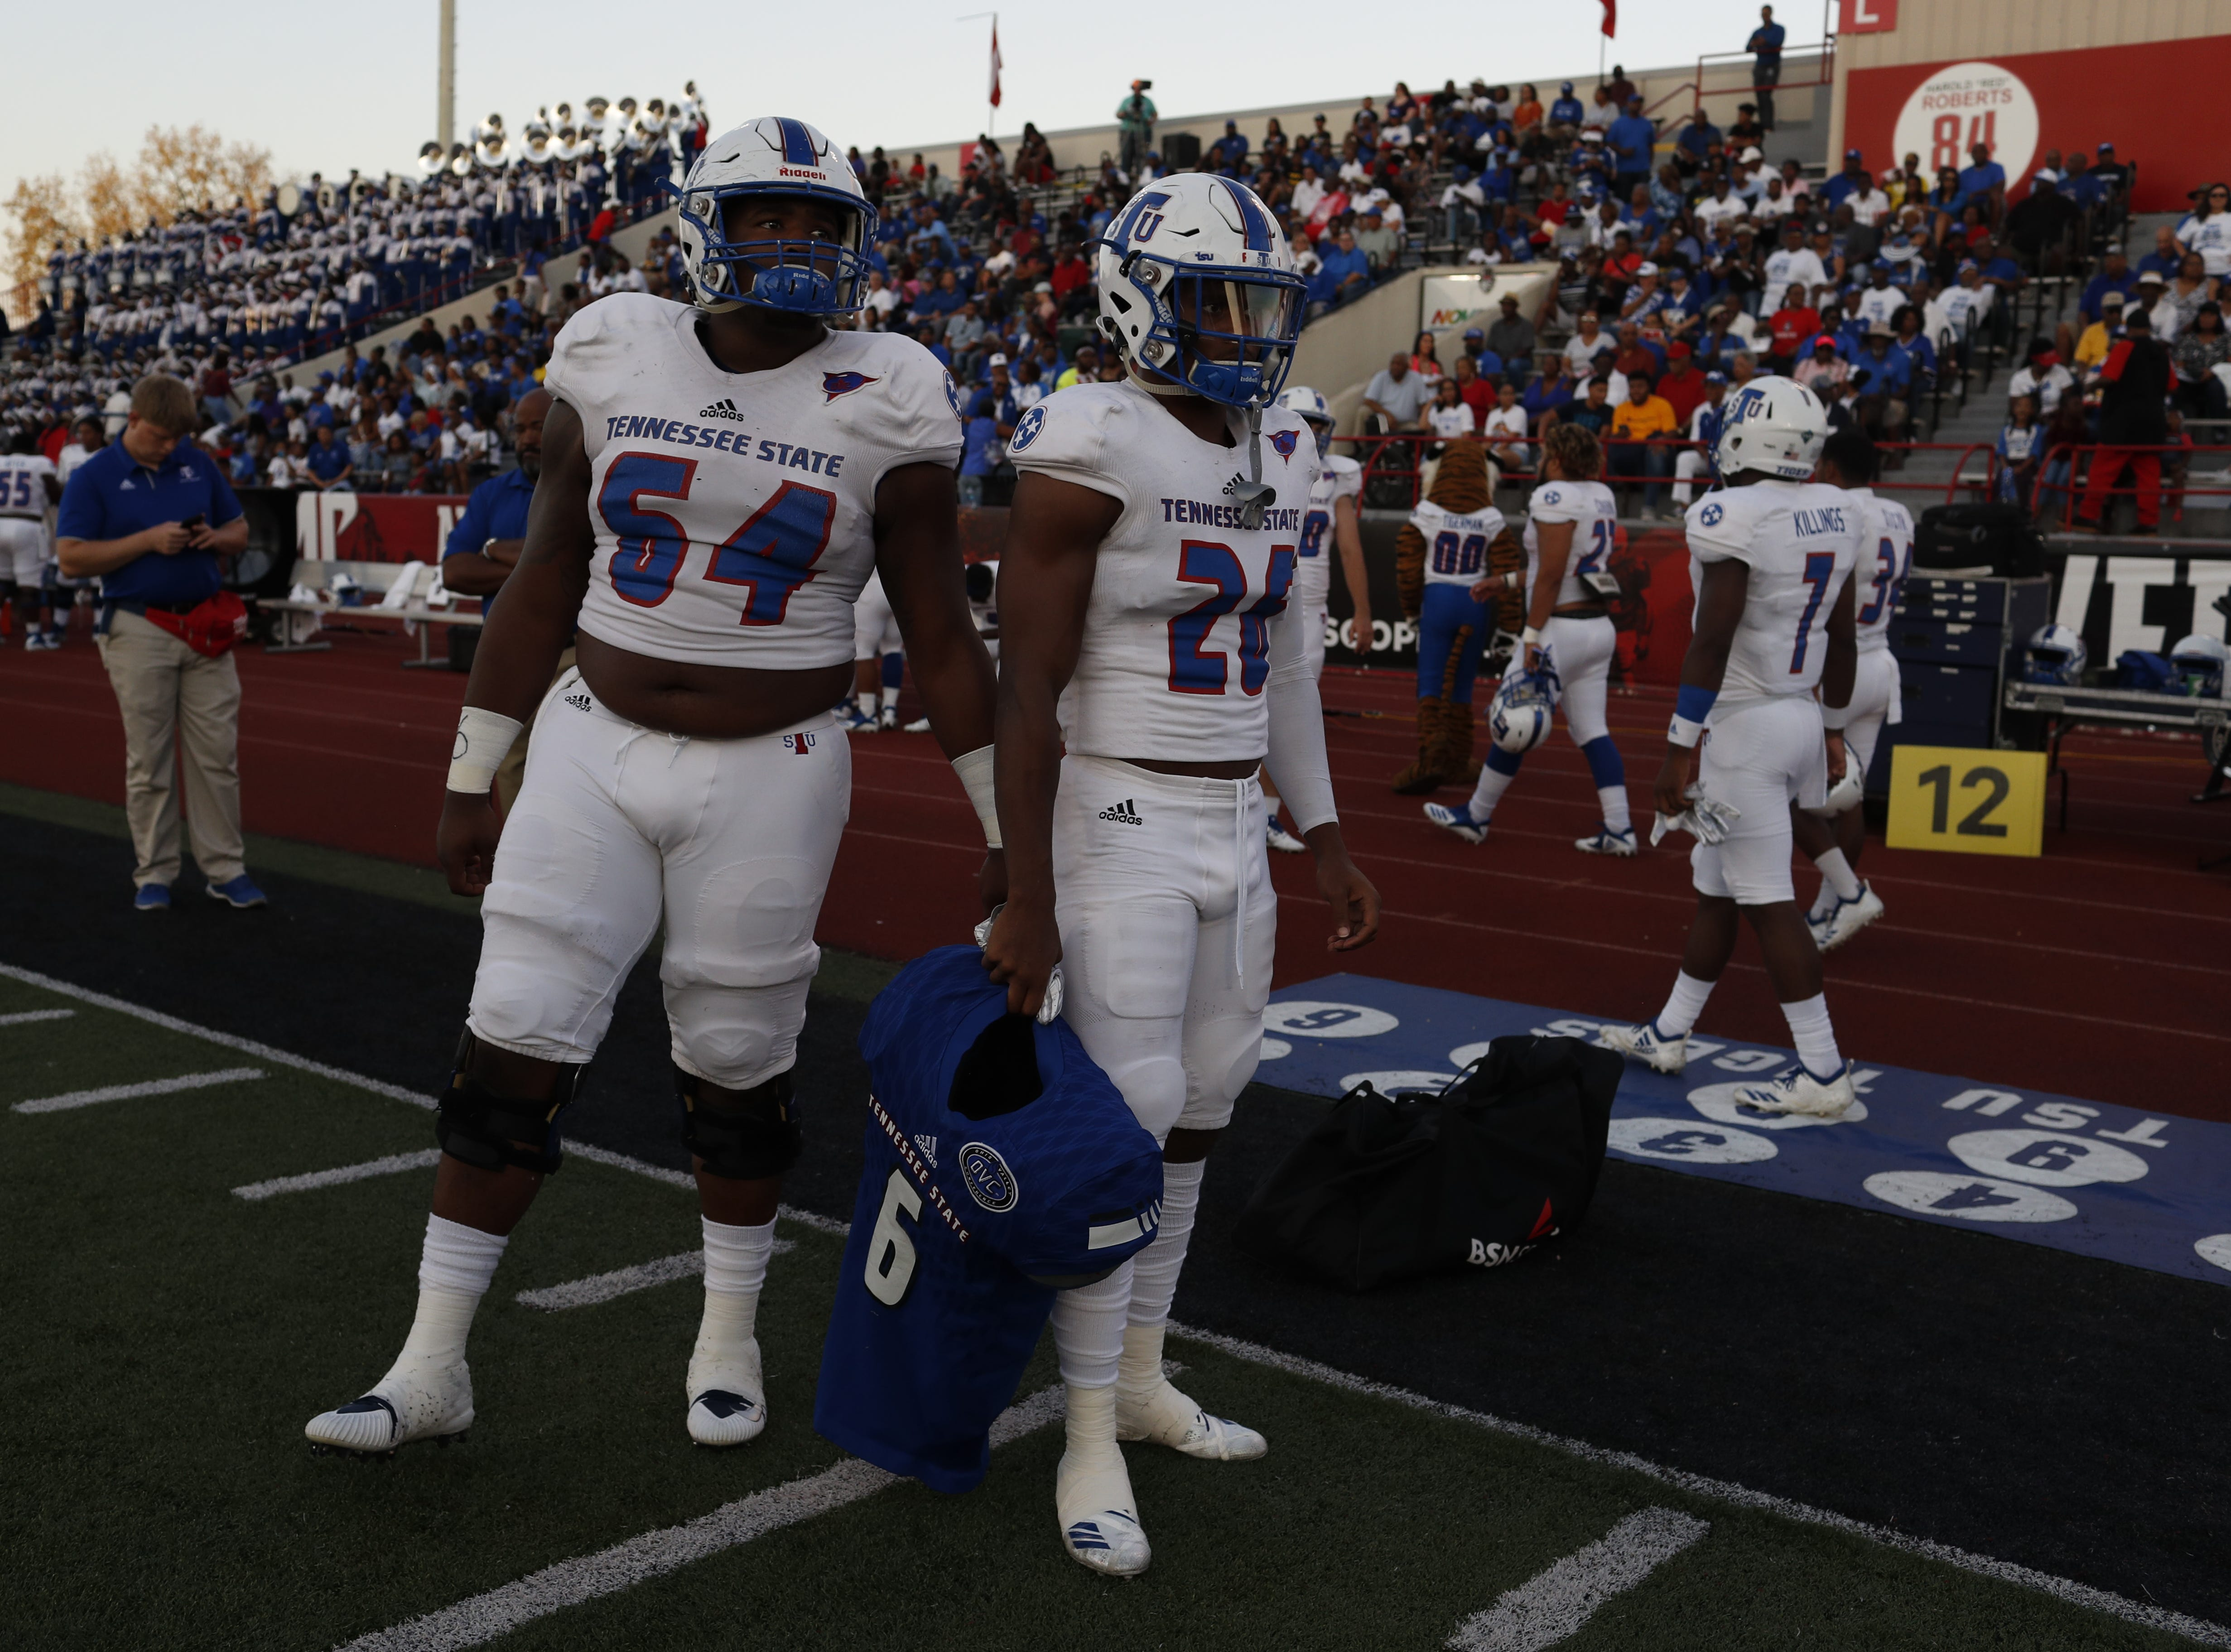 Tennessee State offensive lineman Thomas Burton and safety LaQuarius Cook hold the shoulder pads and jersey of Christion Abercrombie before the Tigers' game at Austin Peay on Saturday, October 6, 2018.